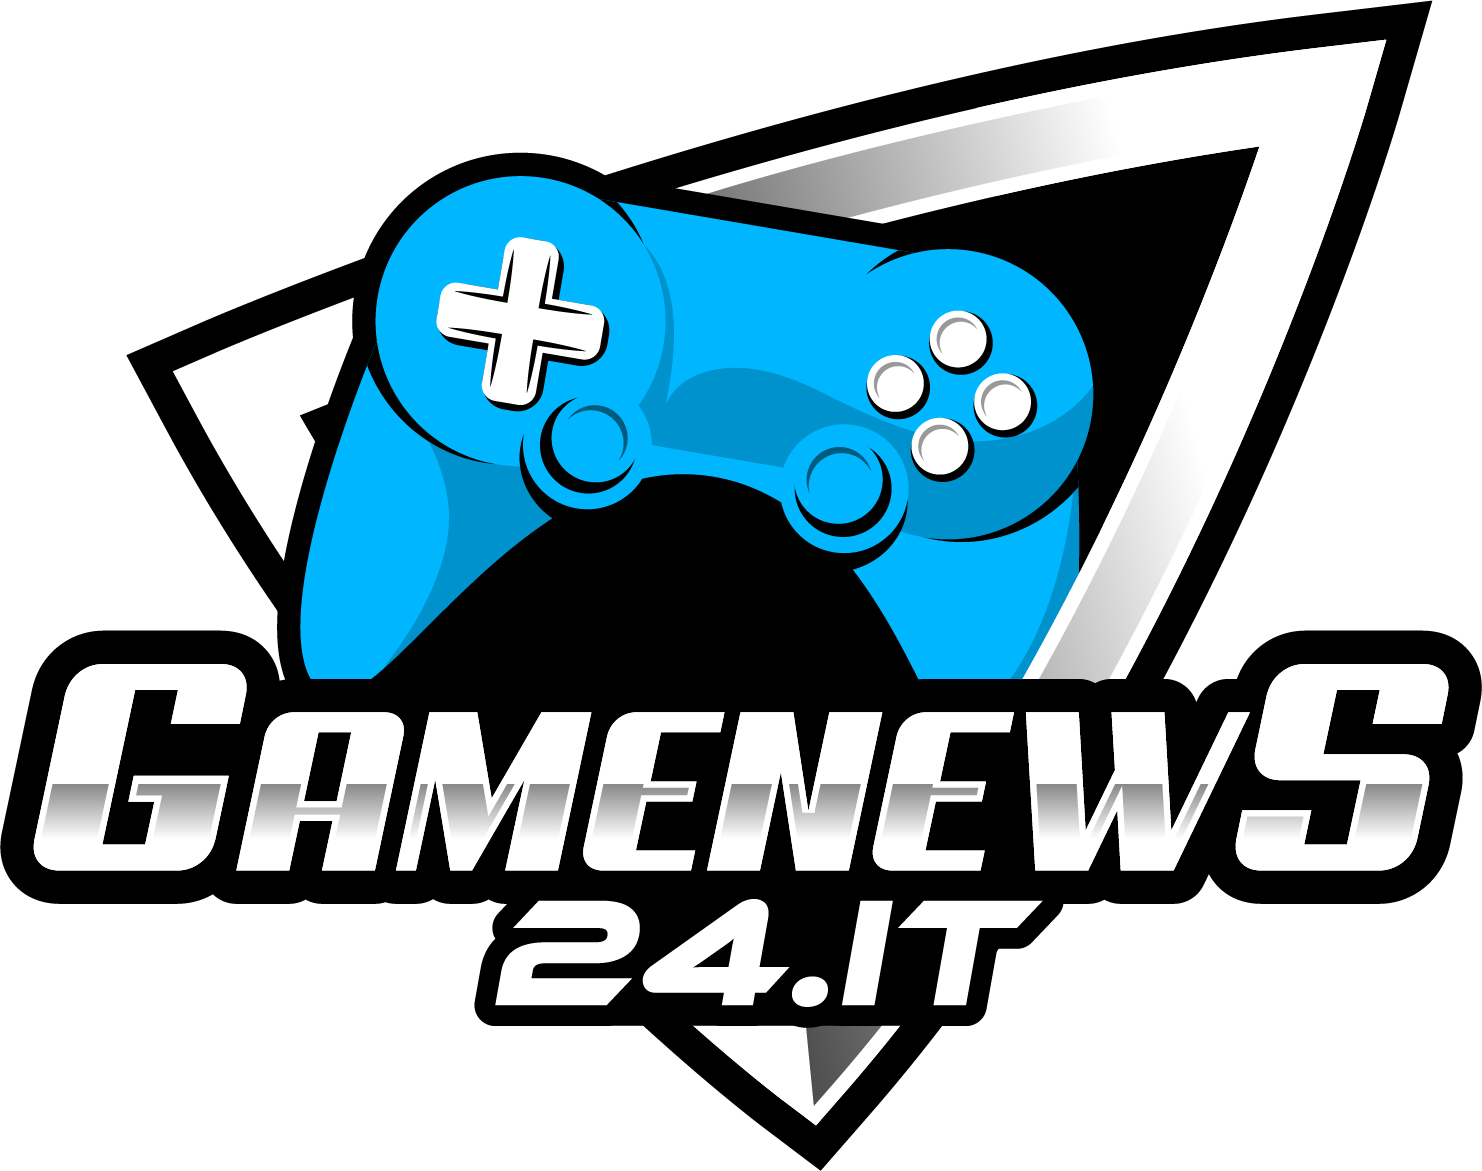 Gamenews24.it